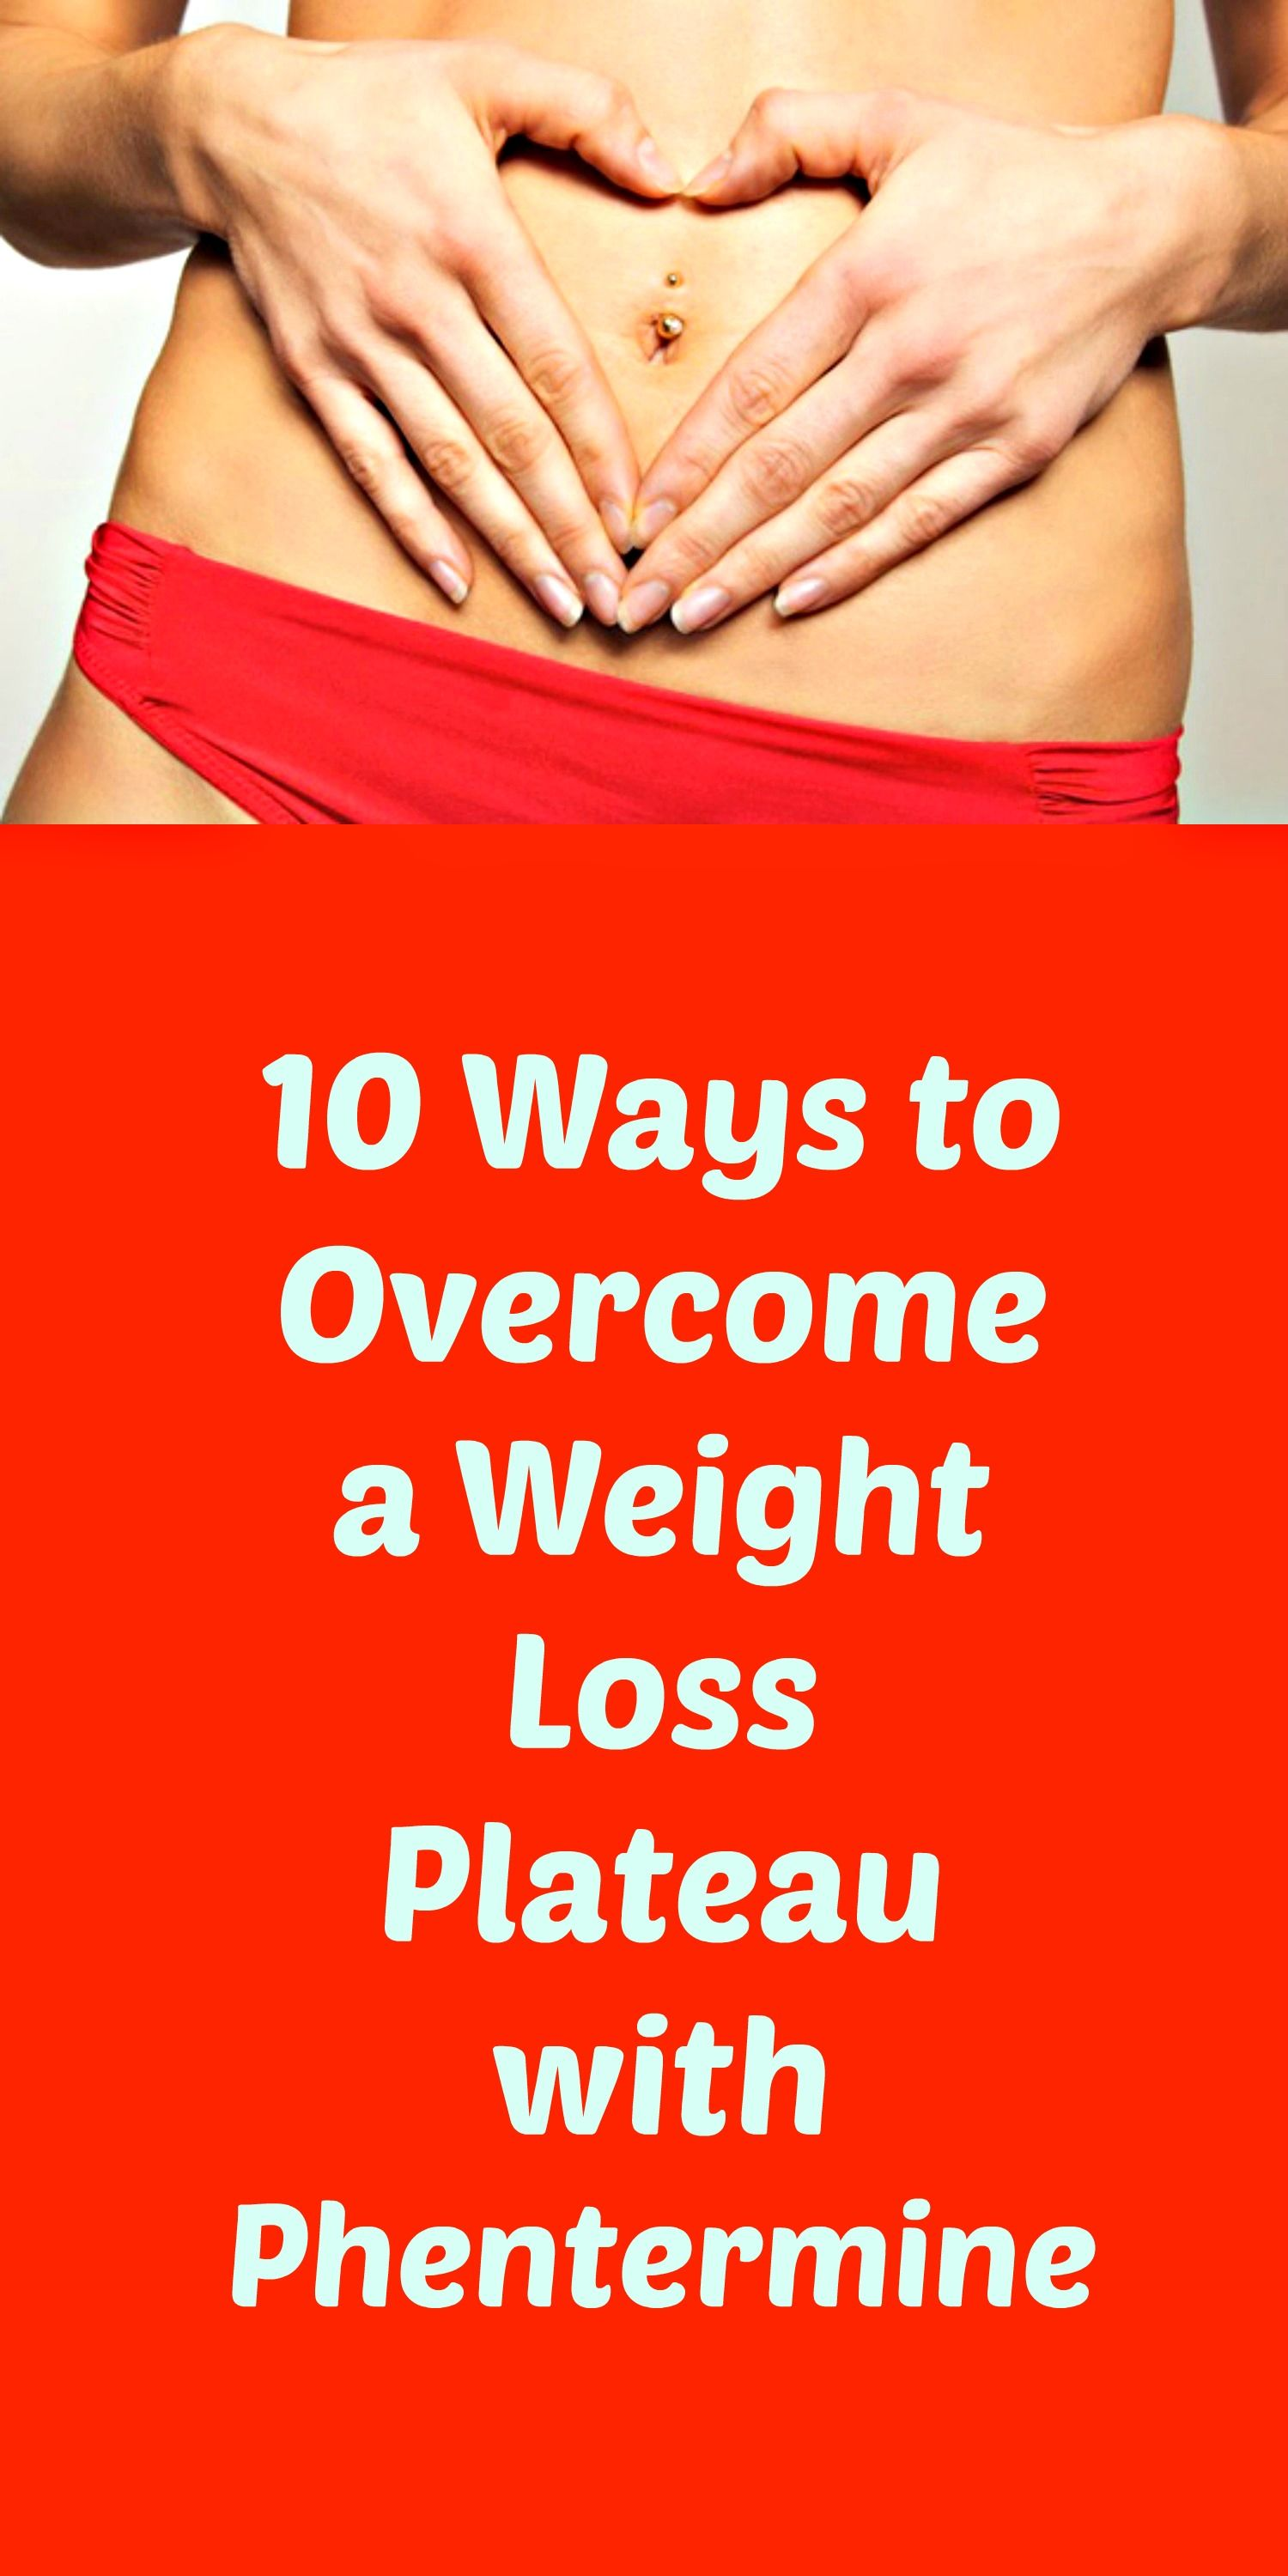 10 Ways to Overcome a Weight Loss Plateau with Phentermine ...